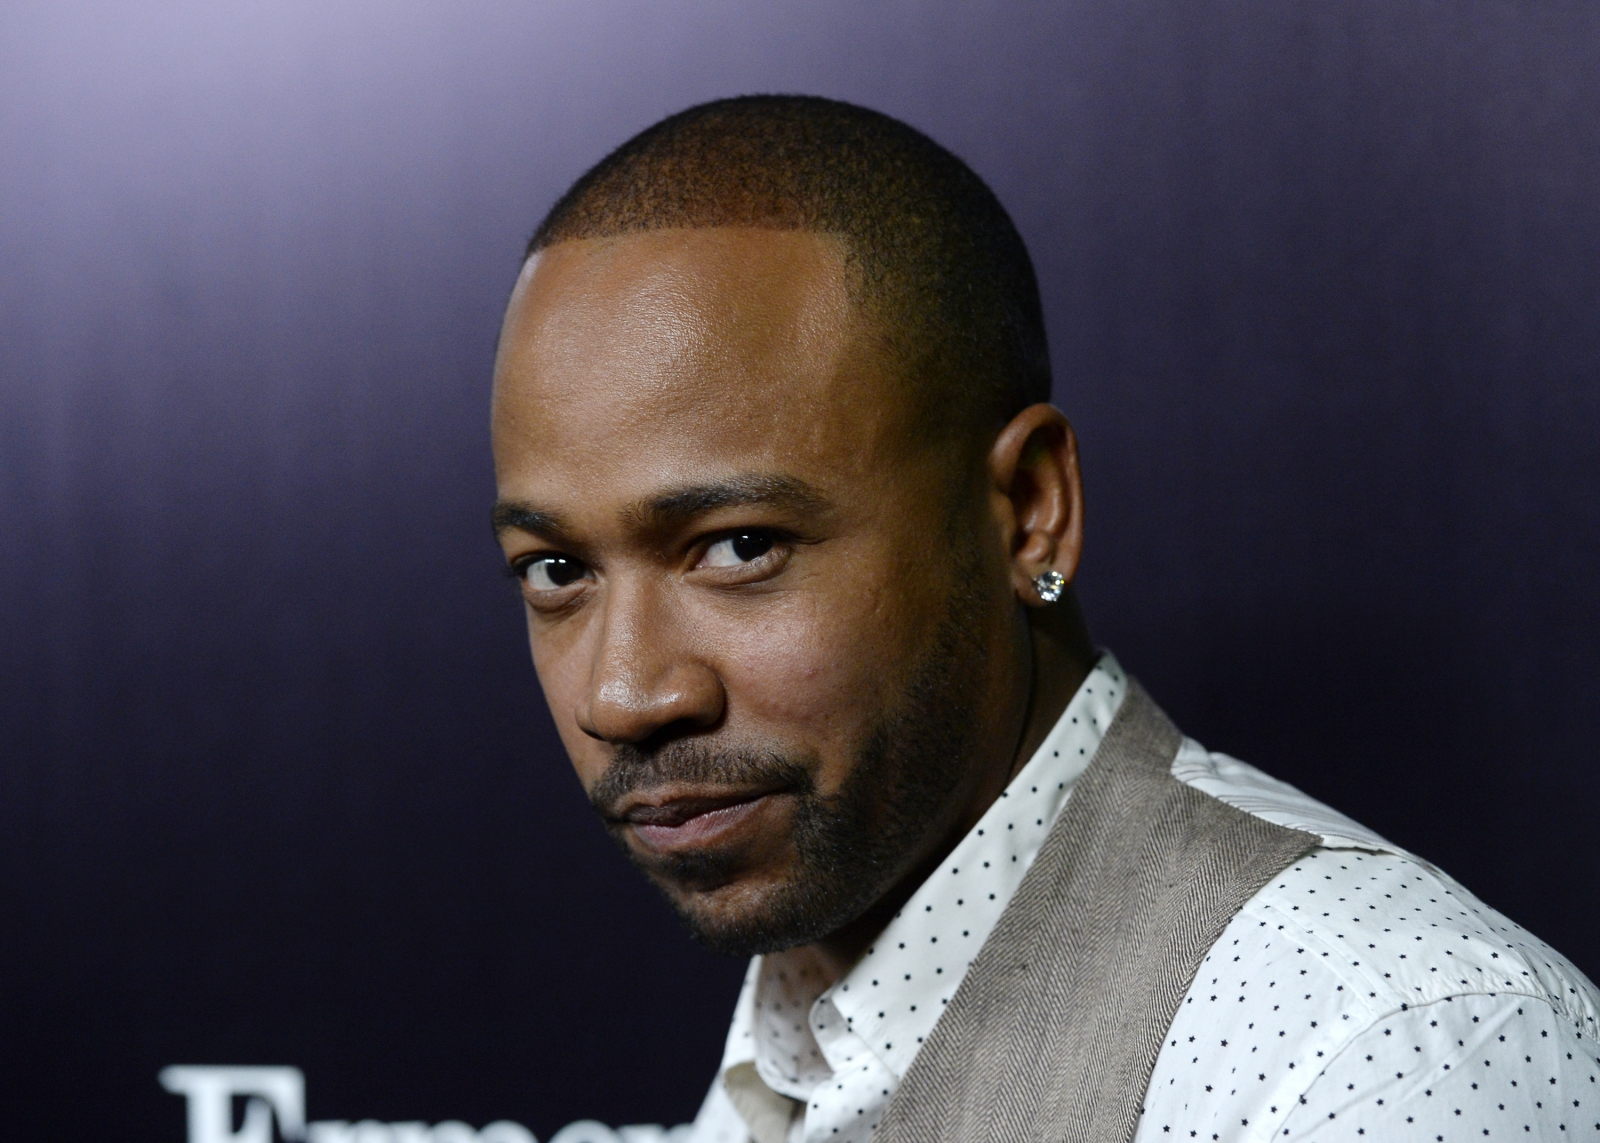 Scandal Star Columbus Short Arrested Over Domestic